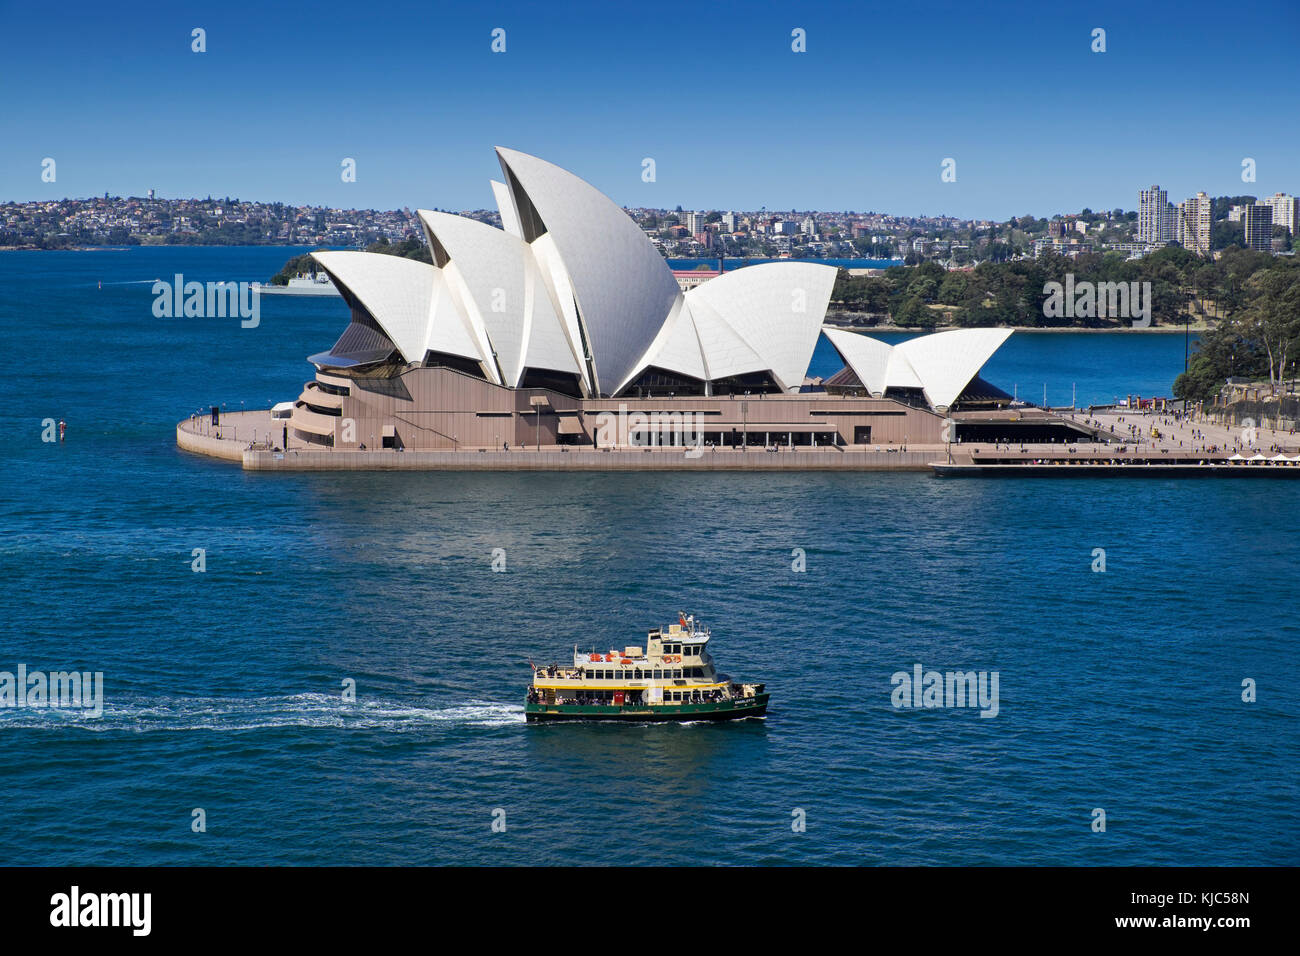 Ferry crossing Sydney Harbour with the Sydney Opera House on a sunny day in Sydney, Australia - Stock Image